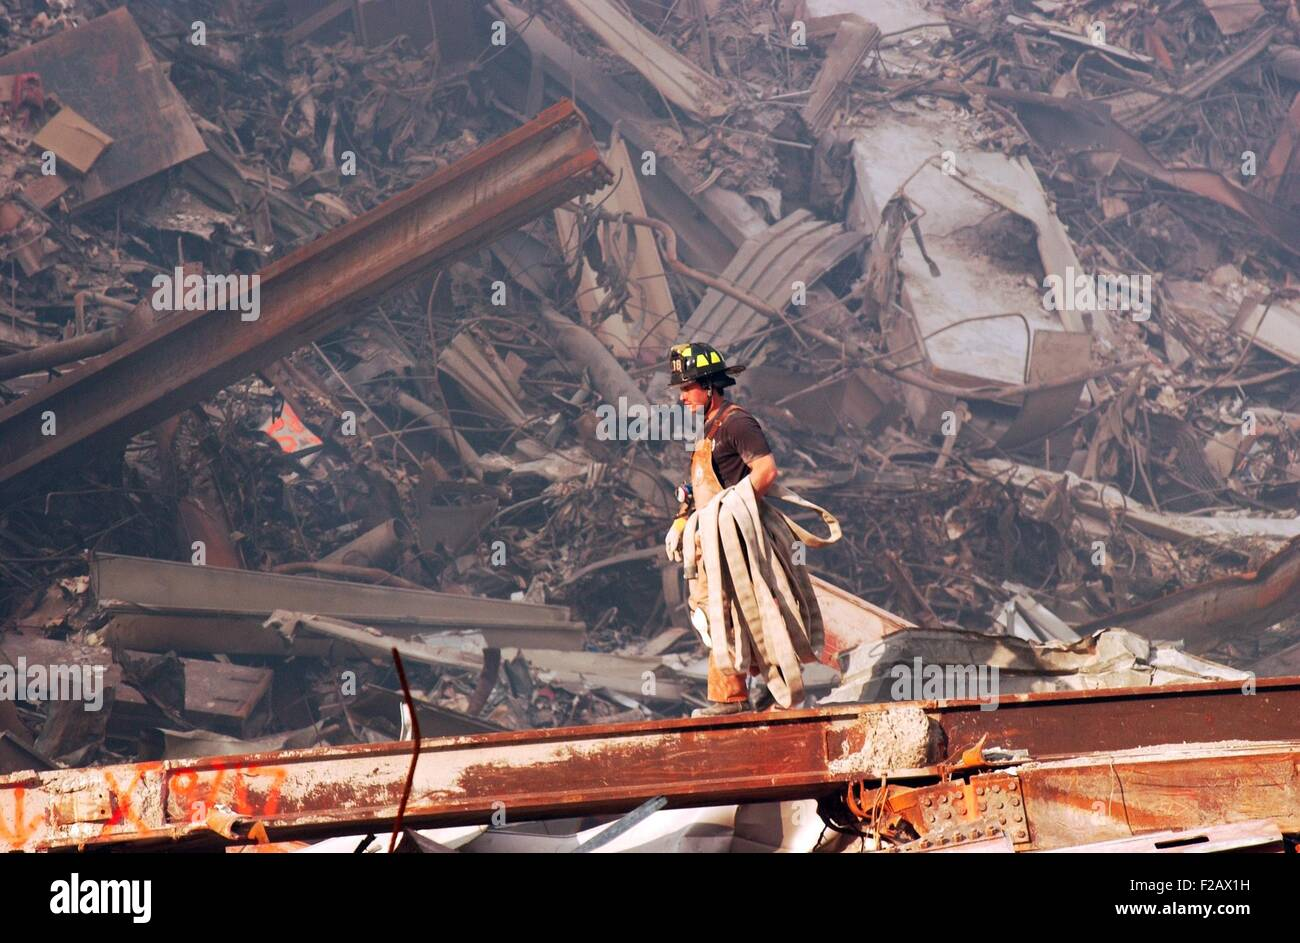 NYC Fire fighter carries a fire hose over smouldering fires and wreckage at Ground Zero, Sept. 18, 2001. World Trade - Stock Image